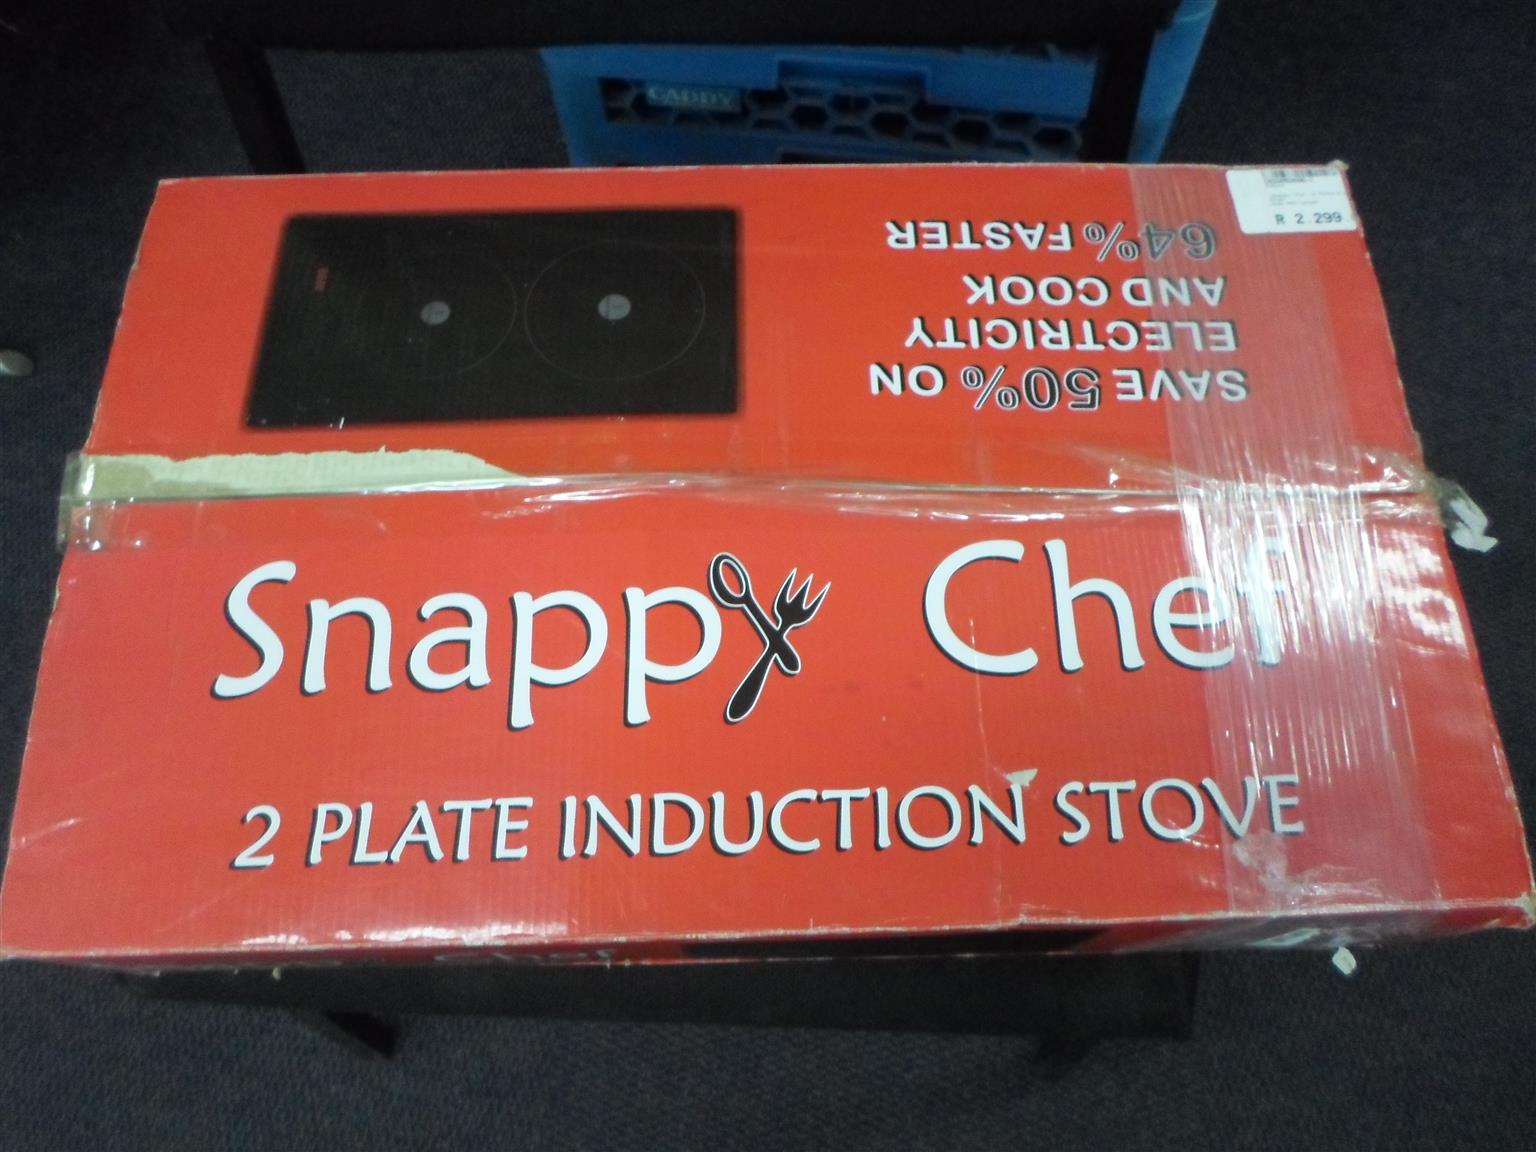 Snappy Chef 2 Plate Induction Stove